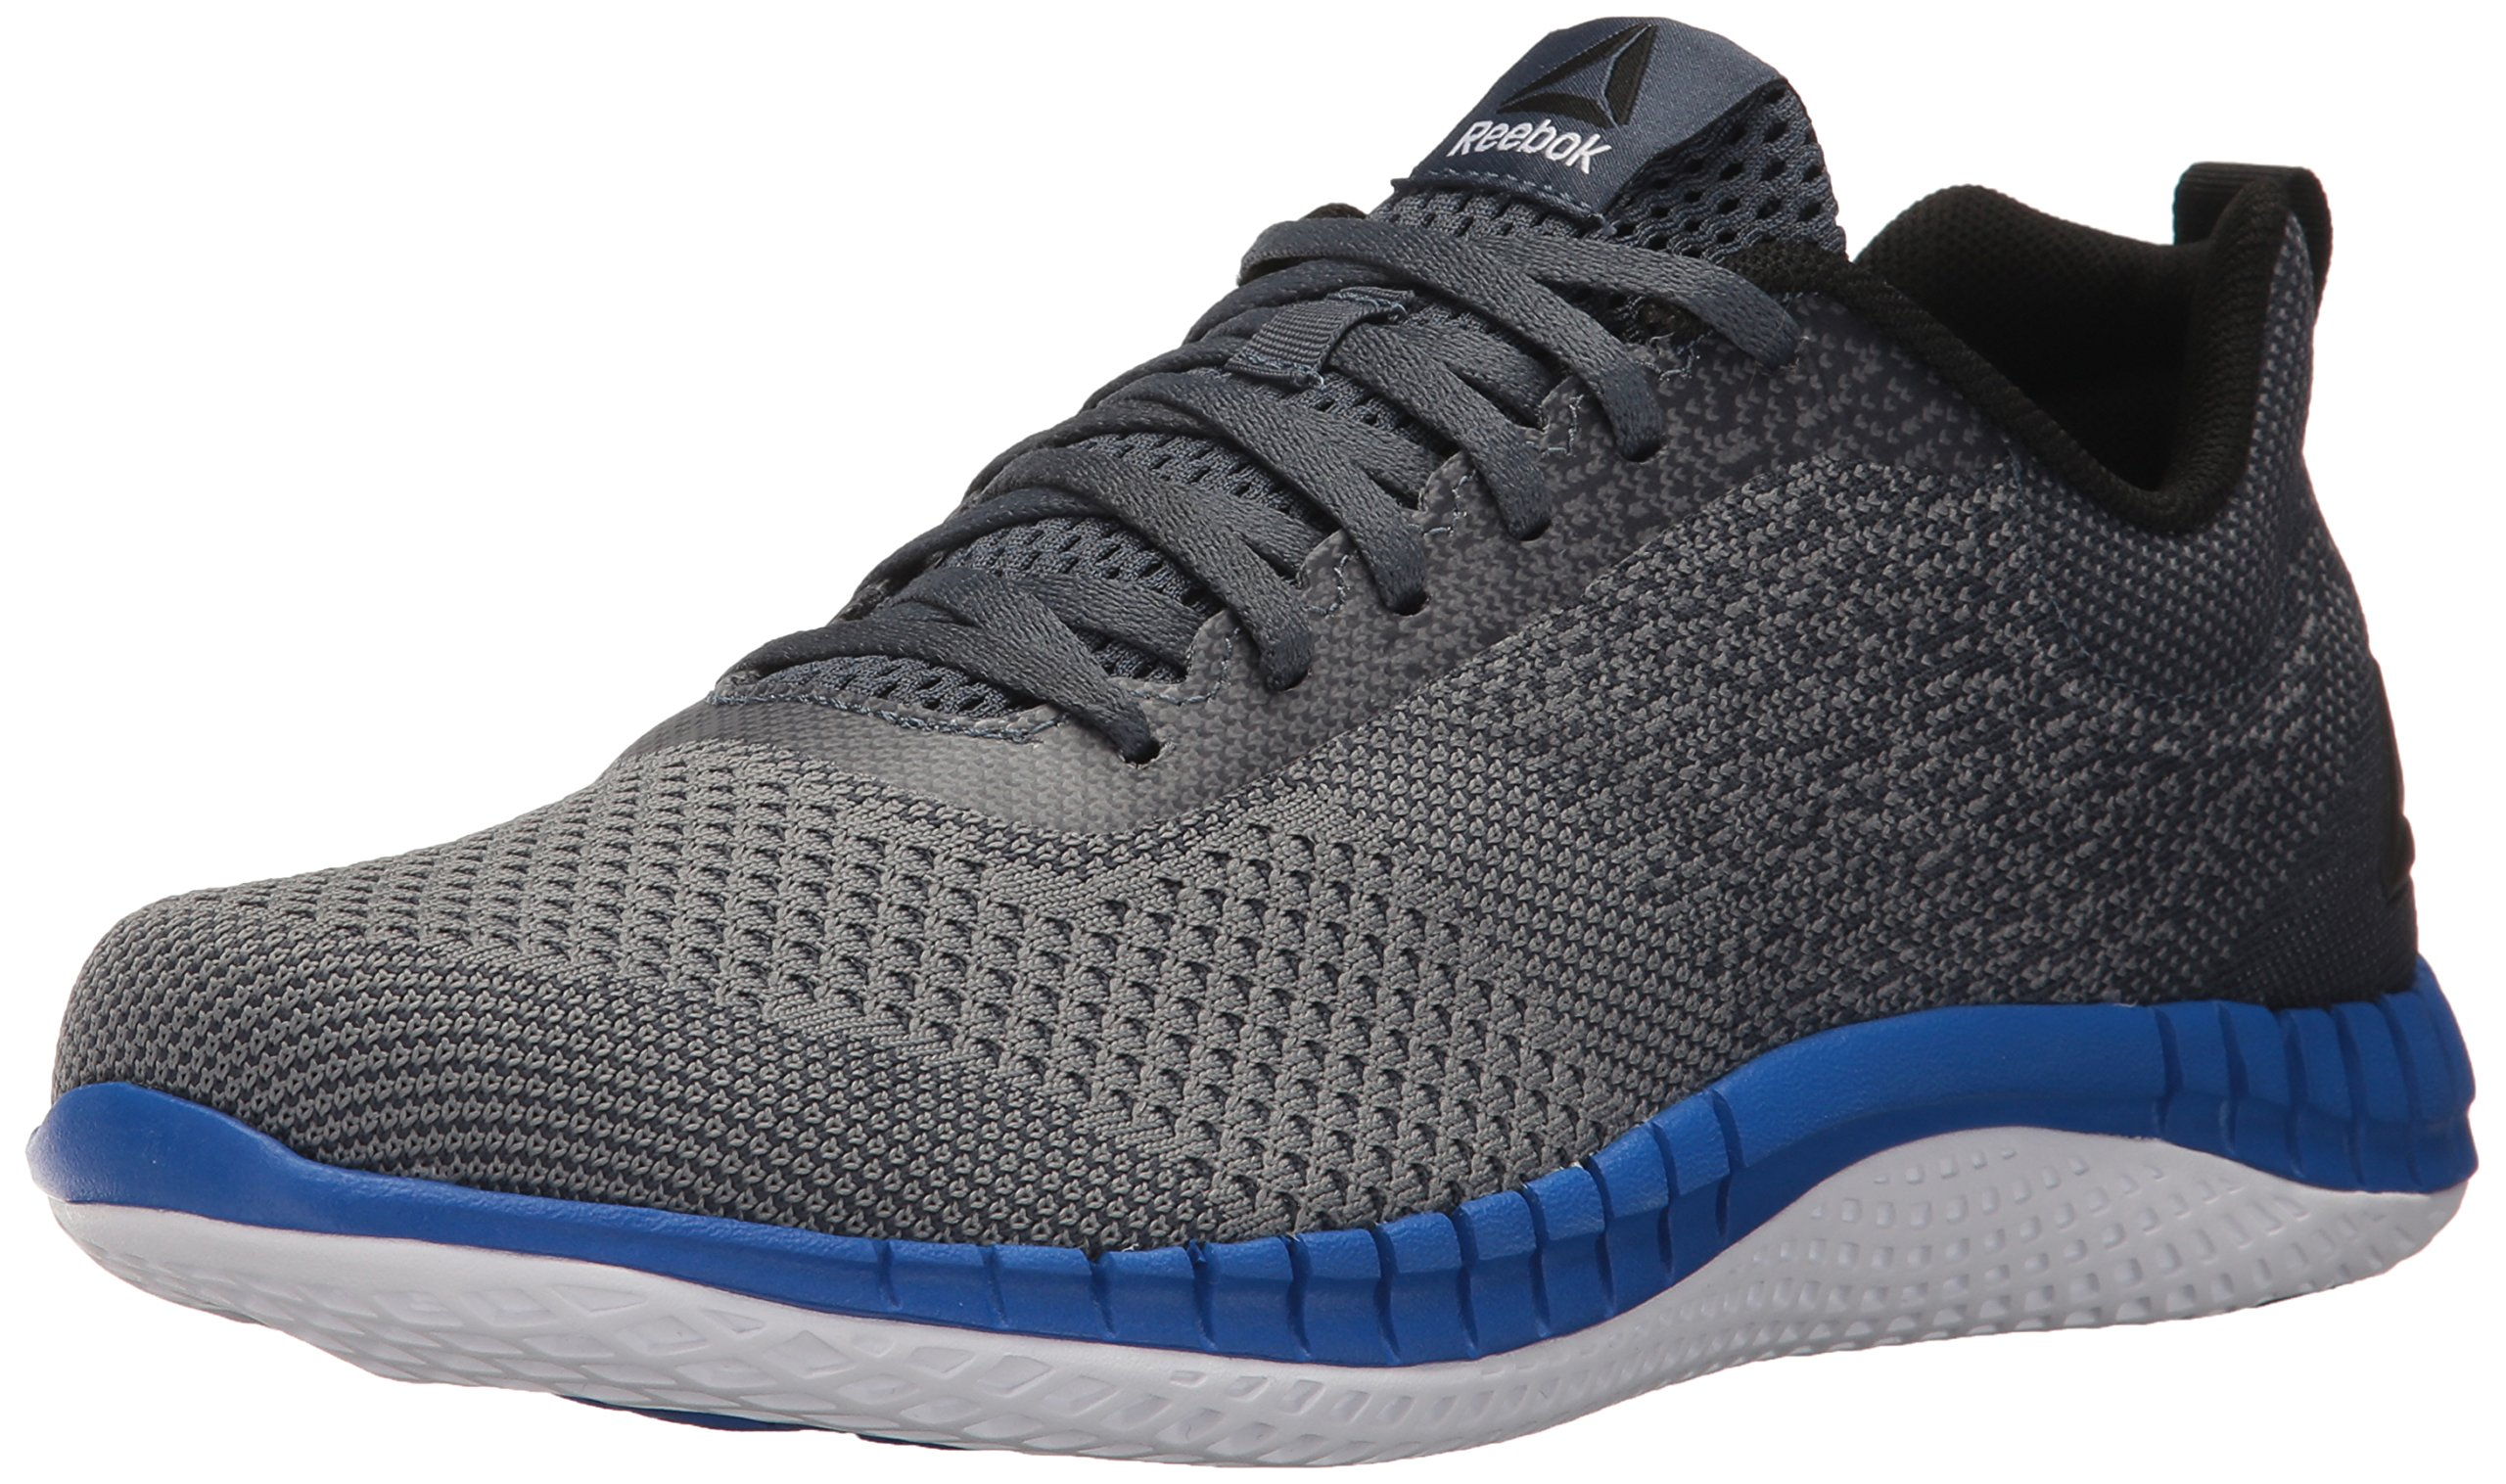 Reebok Men's Print Prime Ultk Running Shoe, Asteroid Dust/Smoky Indigo/White/Black/Vital Blue, 11 M US